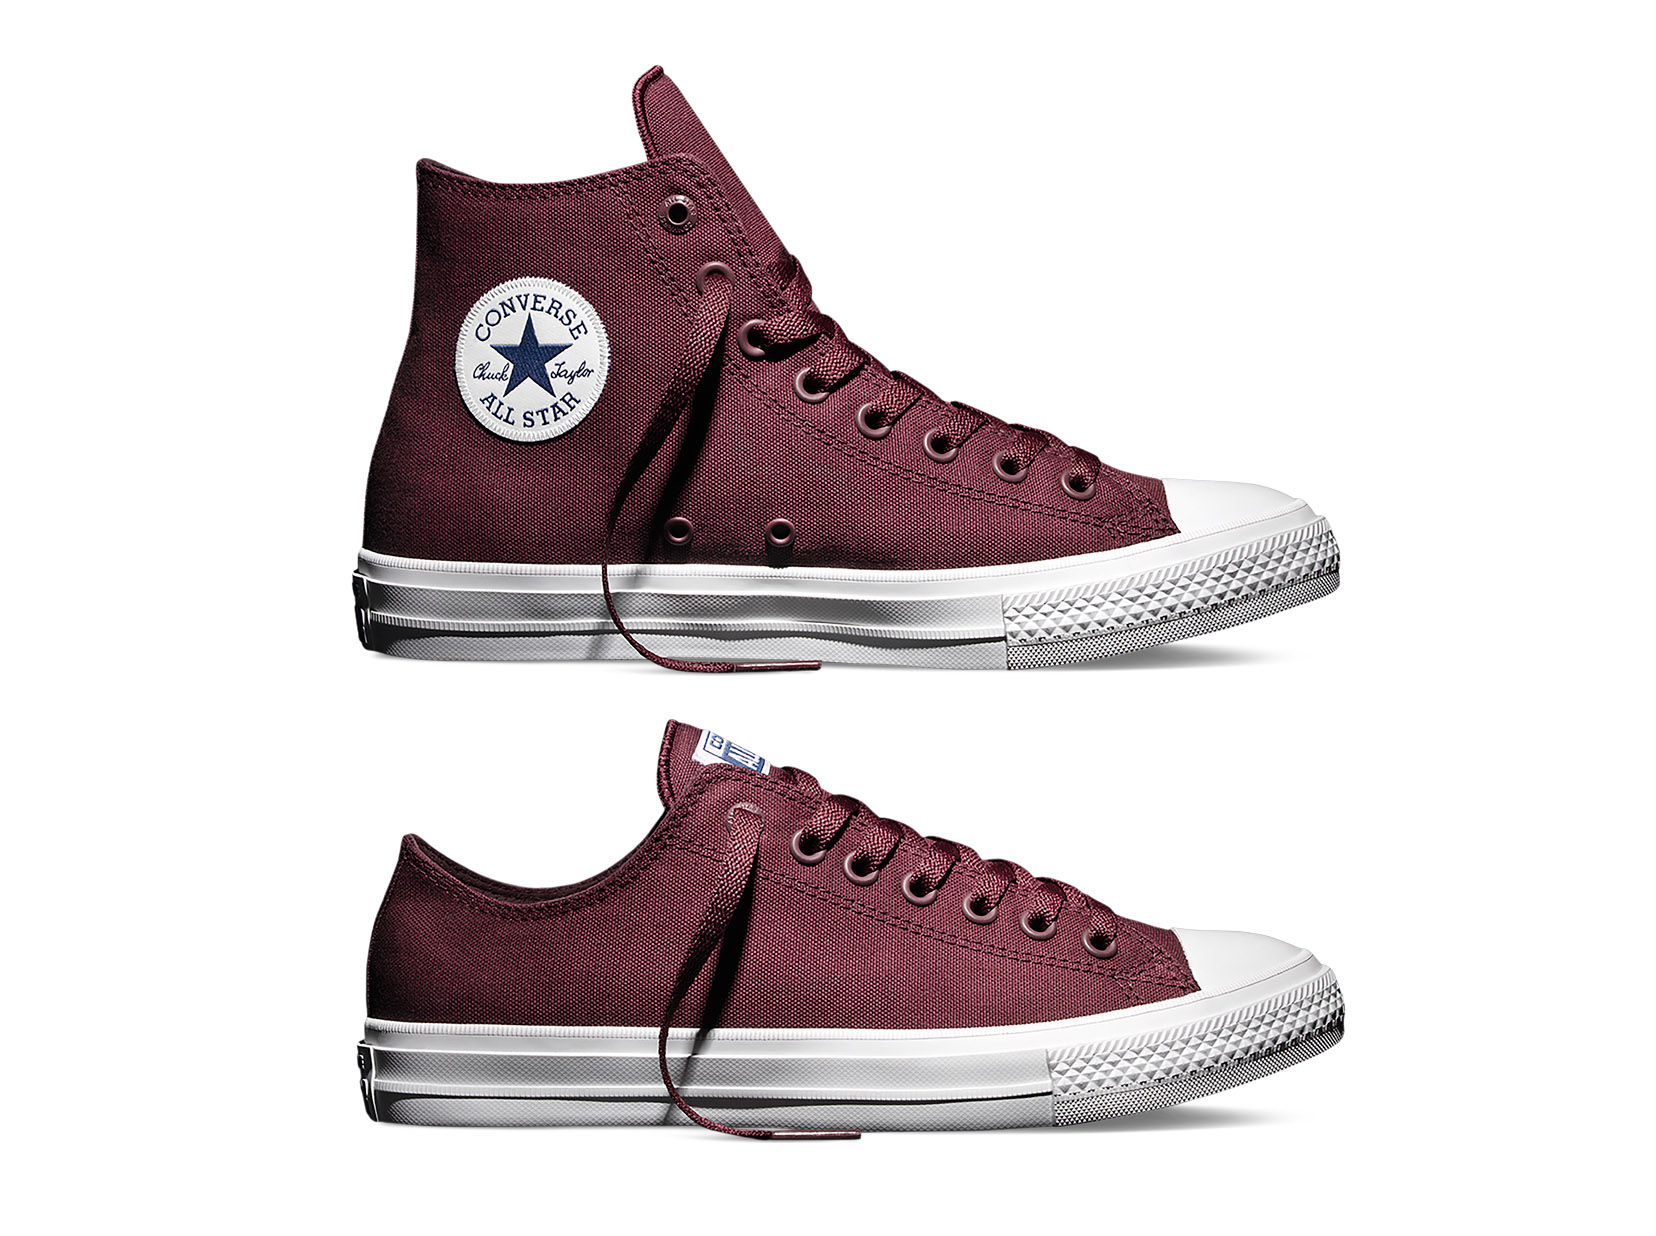 Calendar For Year 2015 United States Time And Date Converse Chuck Taylor All Star Ii Bordeaux Available